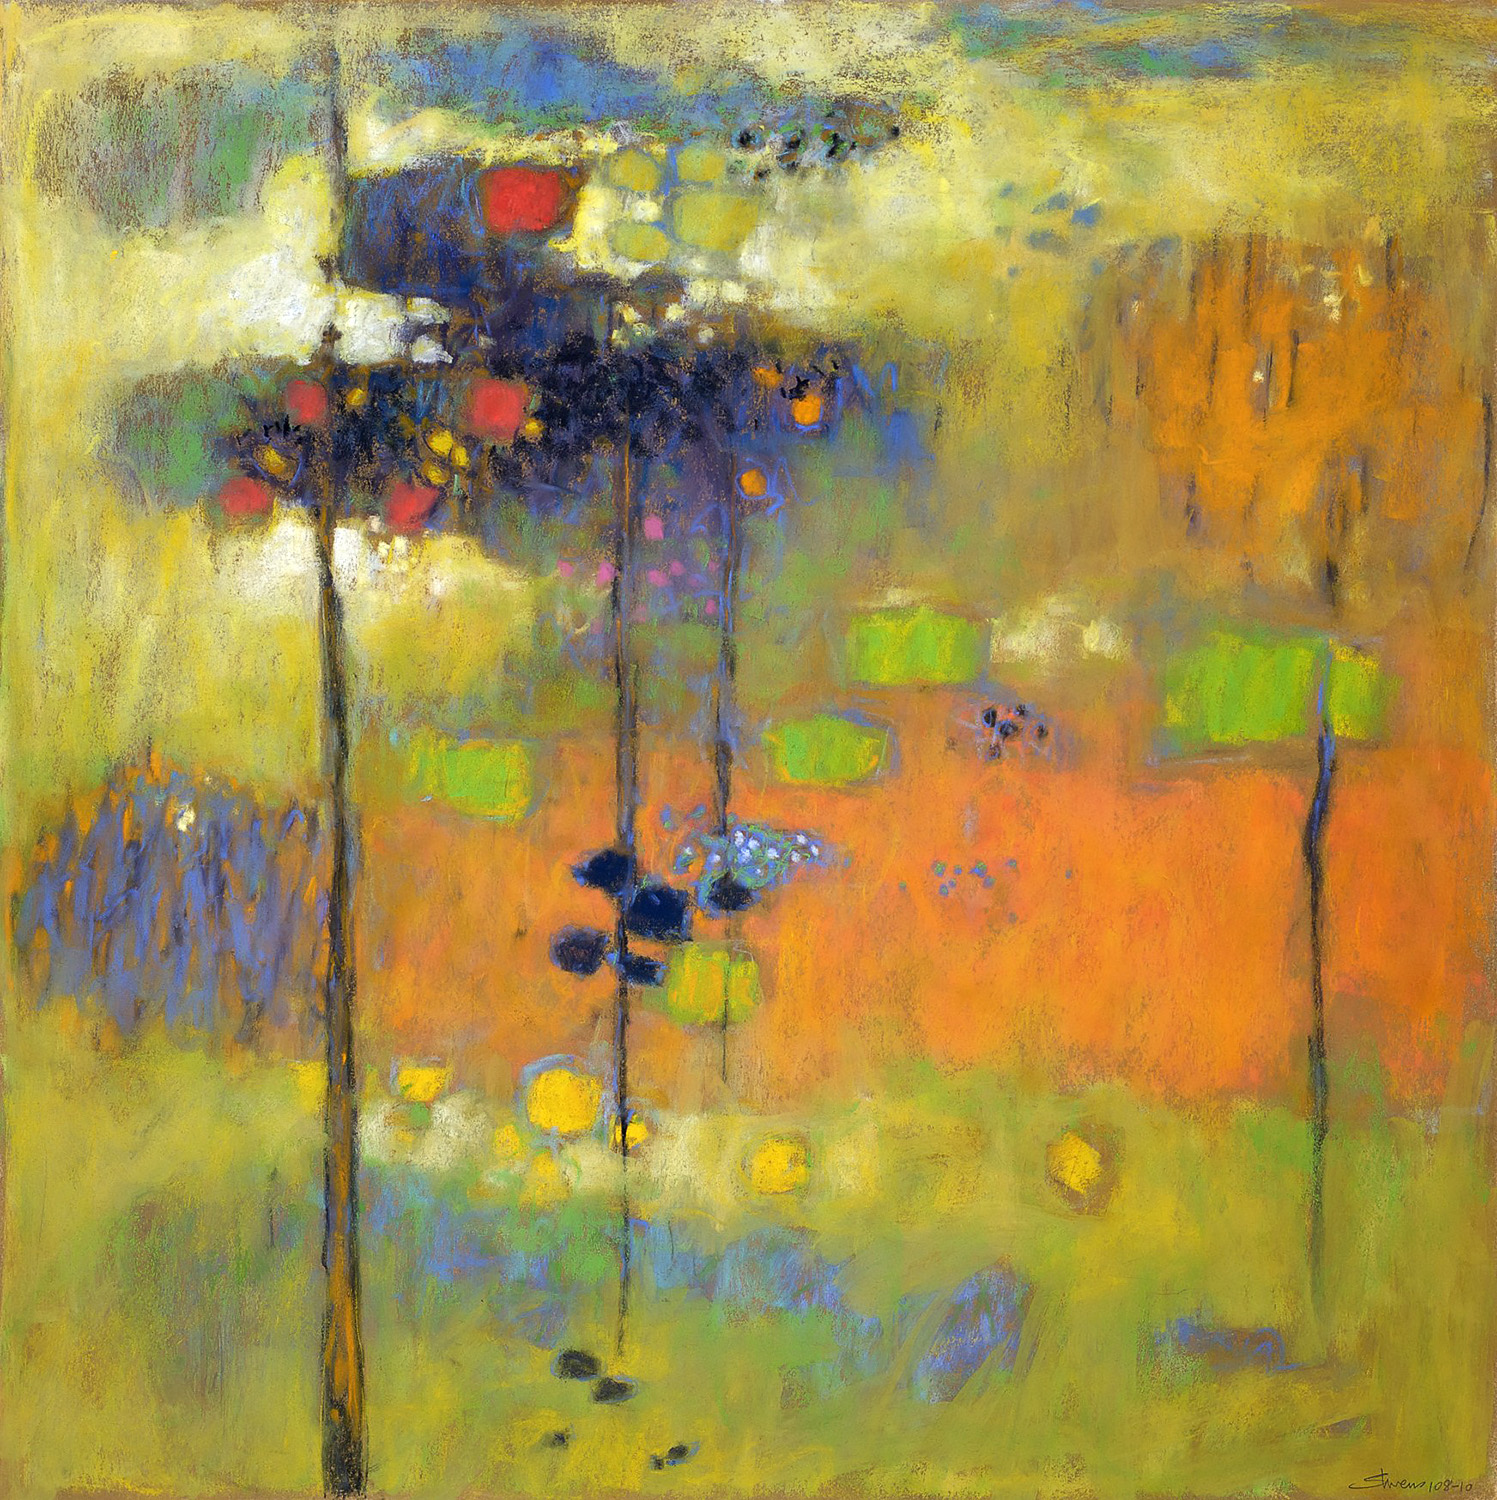 Chasing the Dawn   | pastel on paper | 24 x 24"